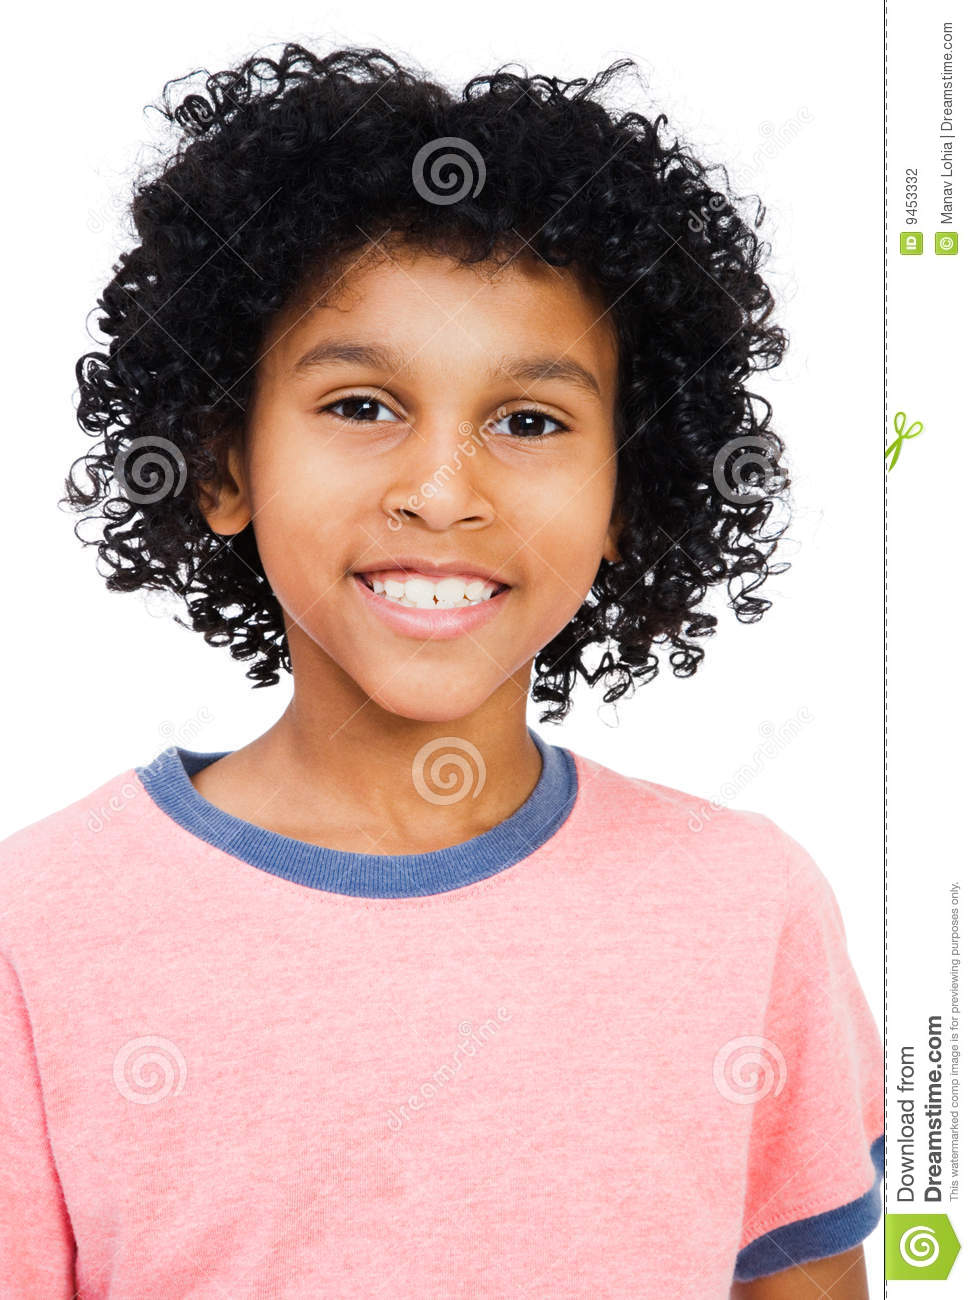 Mixed Race Boy Smiling Stock Photography Image 9453332